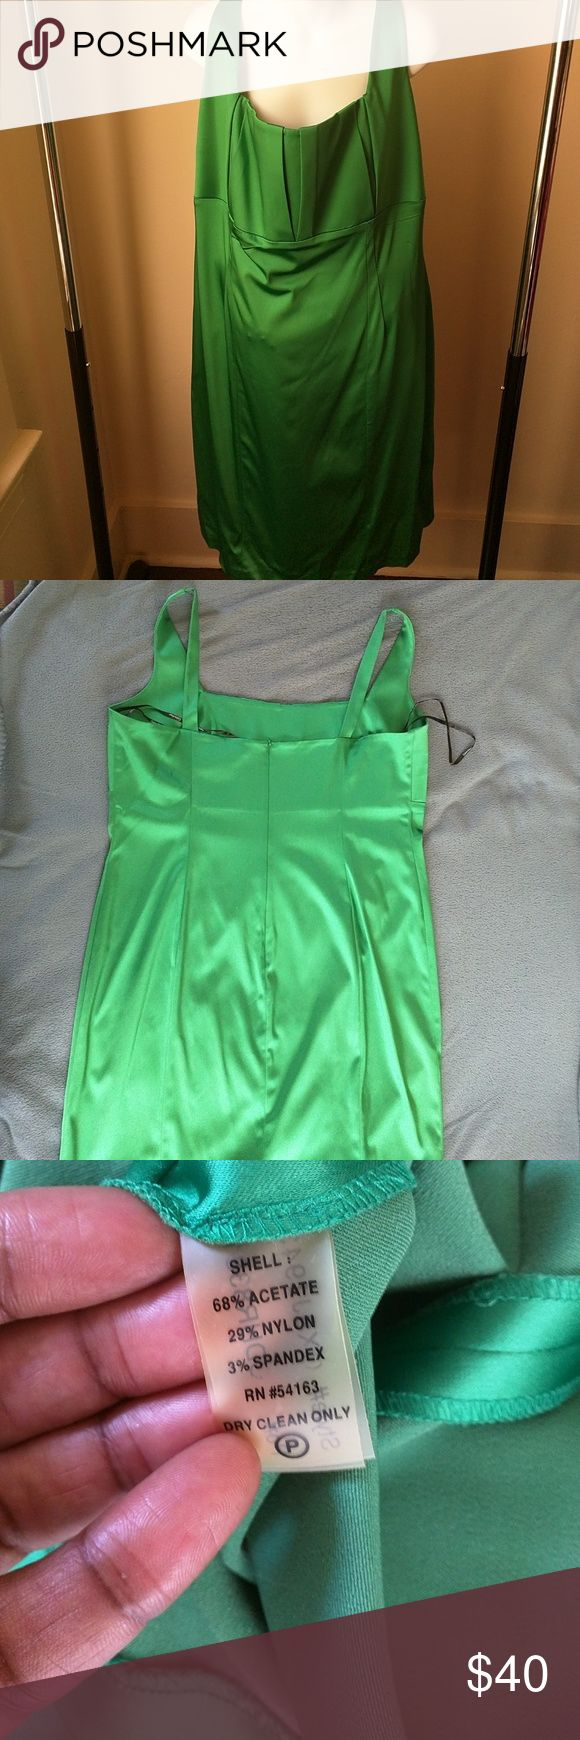 Calvin Klein semi formal Worn once and dry cleaned. Excellent condition Calvin Klein Dresses